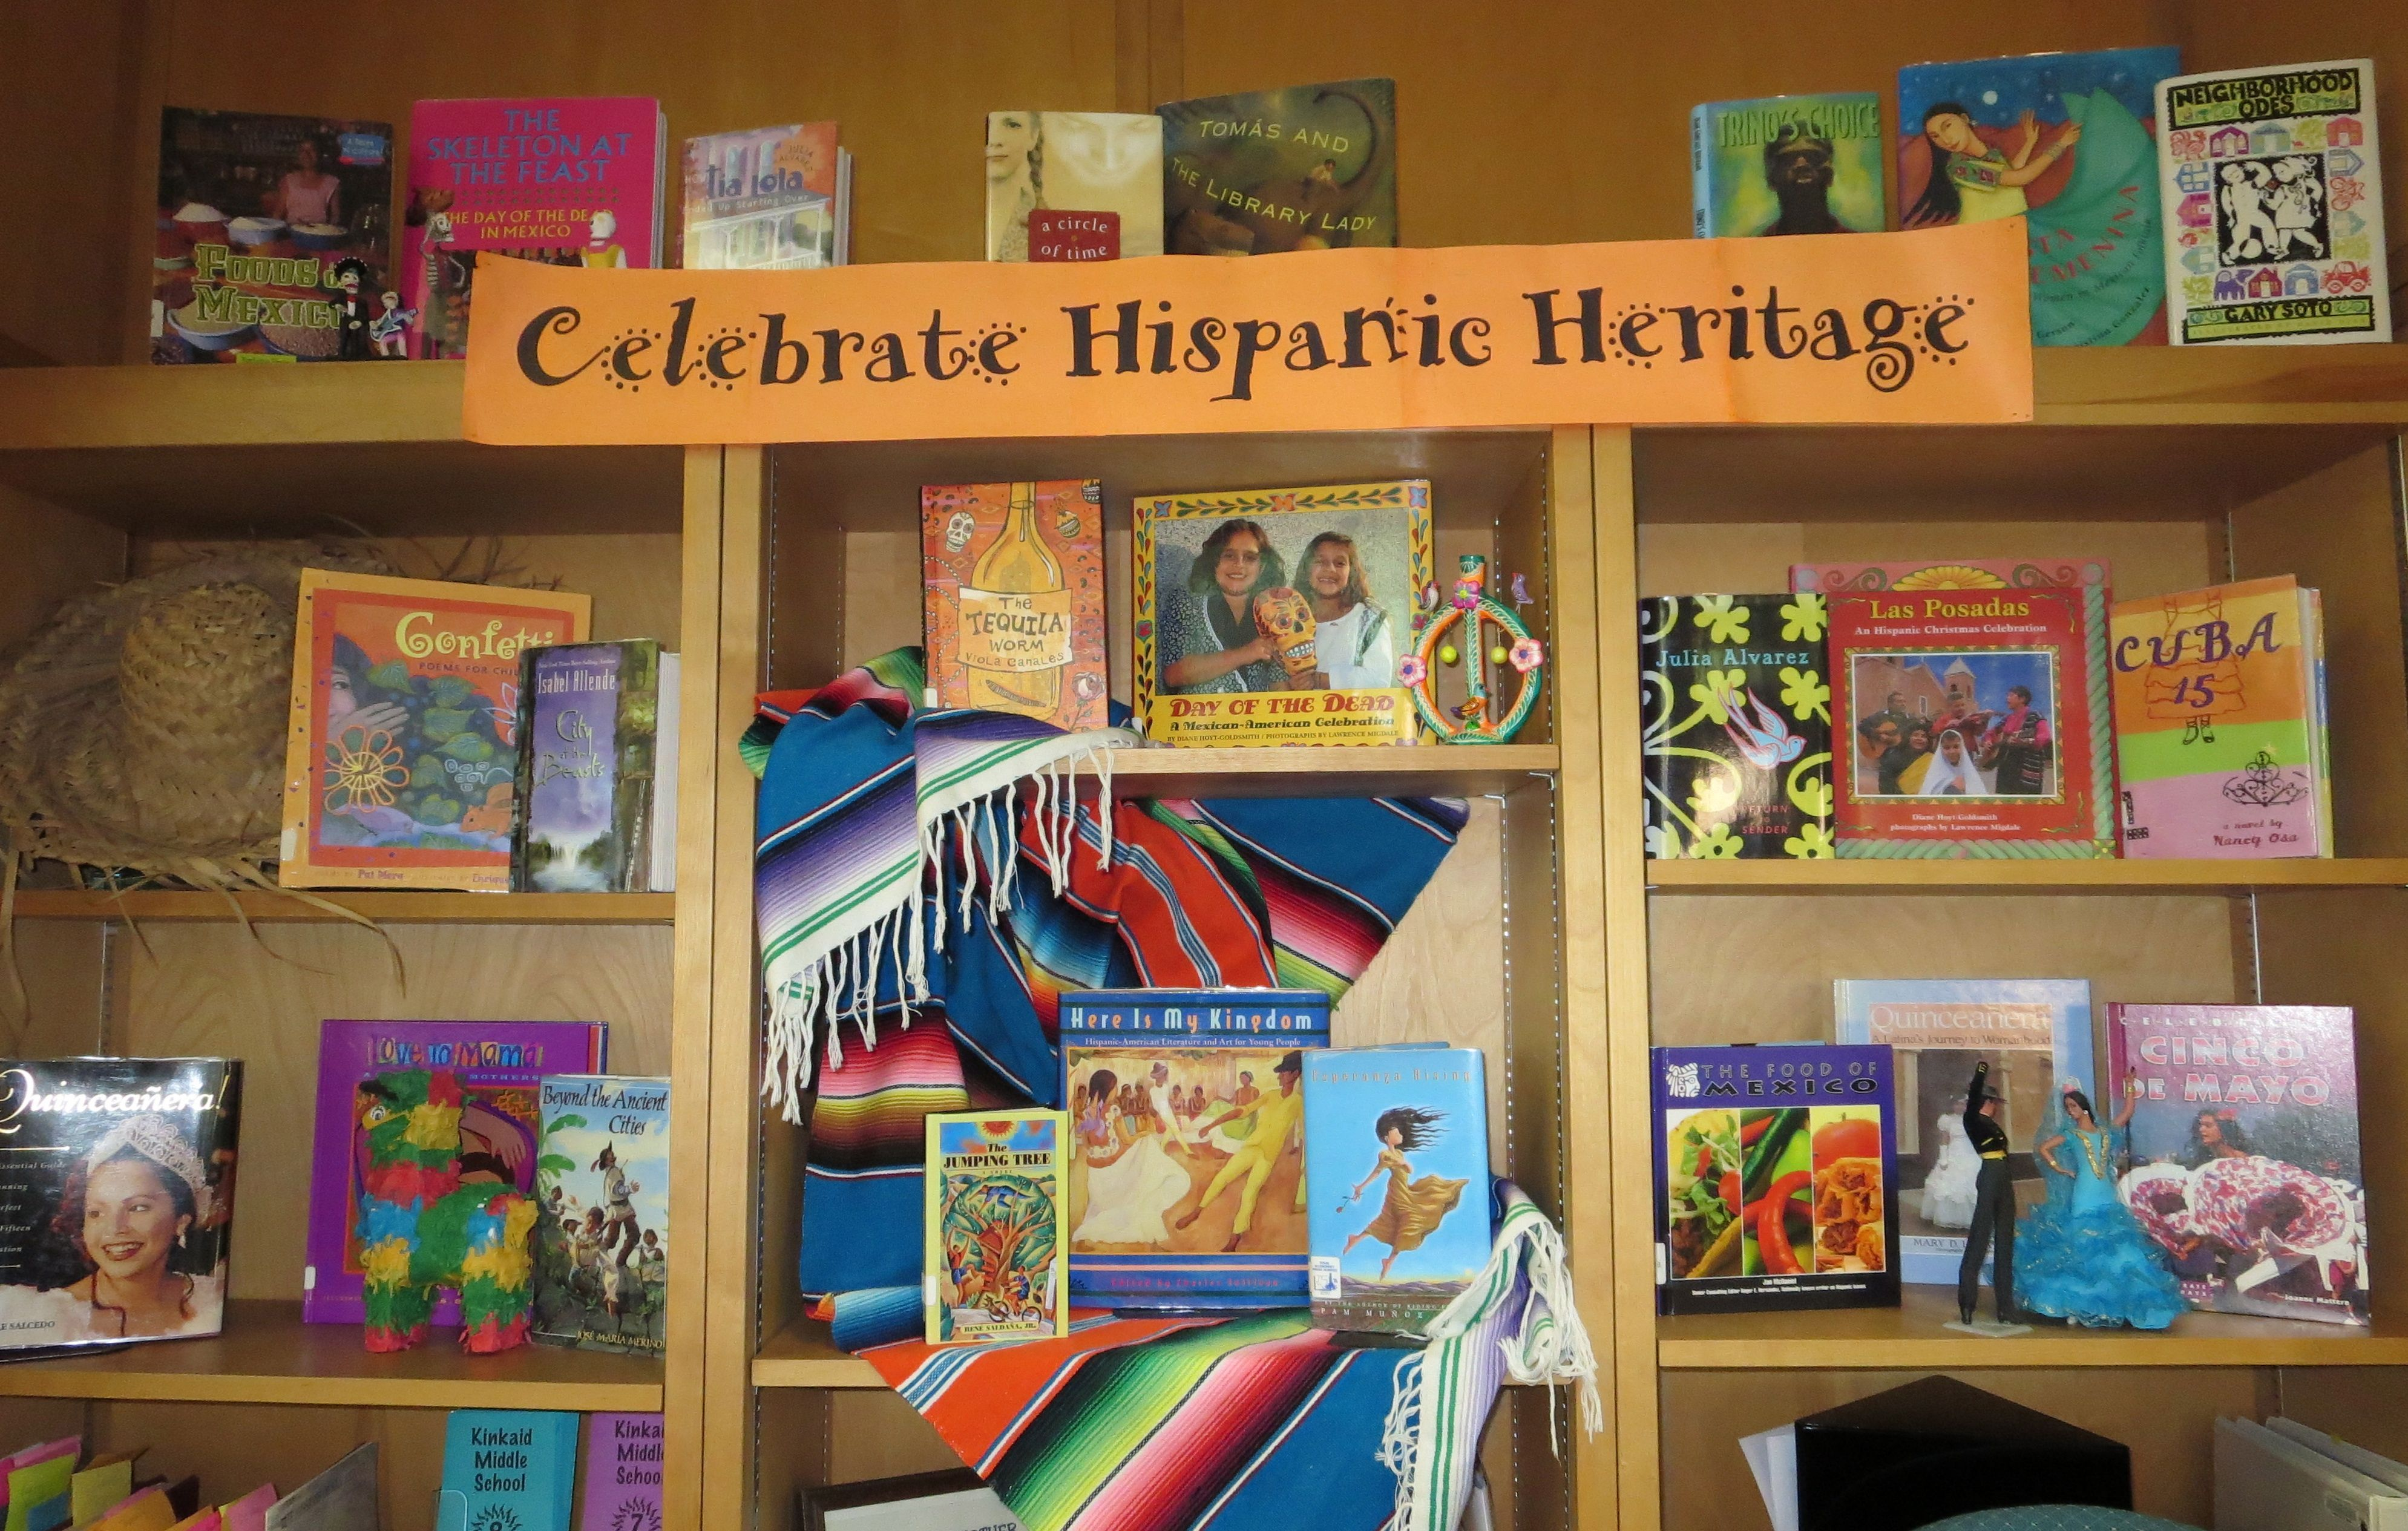 Celebrating Hispanic Heritage Month With Images